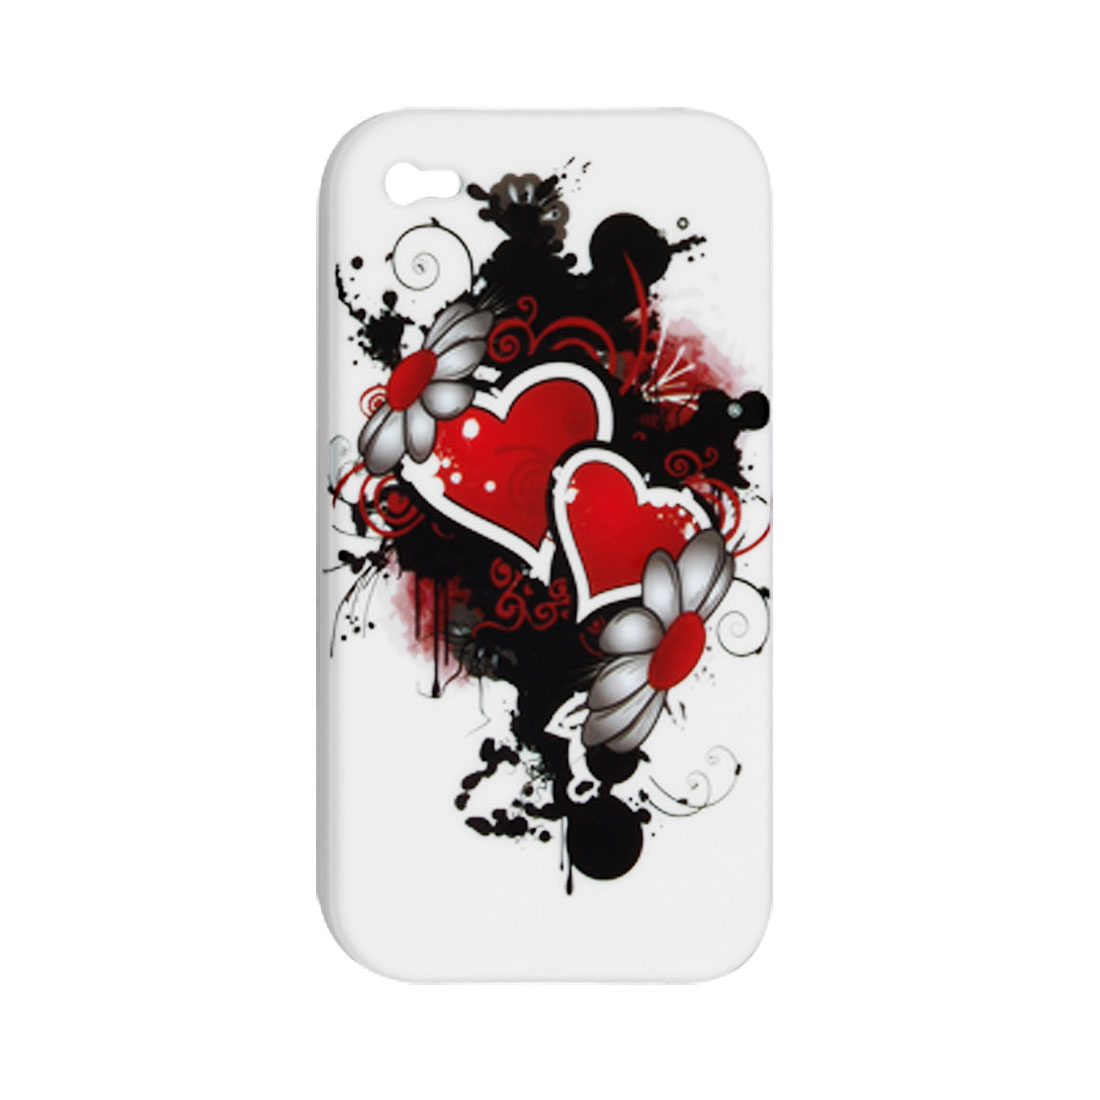 Red Heart Design Plastic White Case for iPhone 4 4G